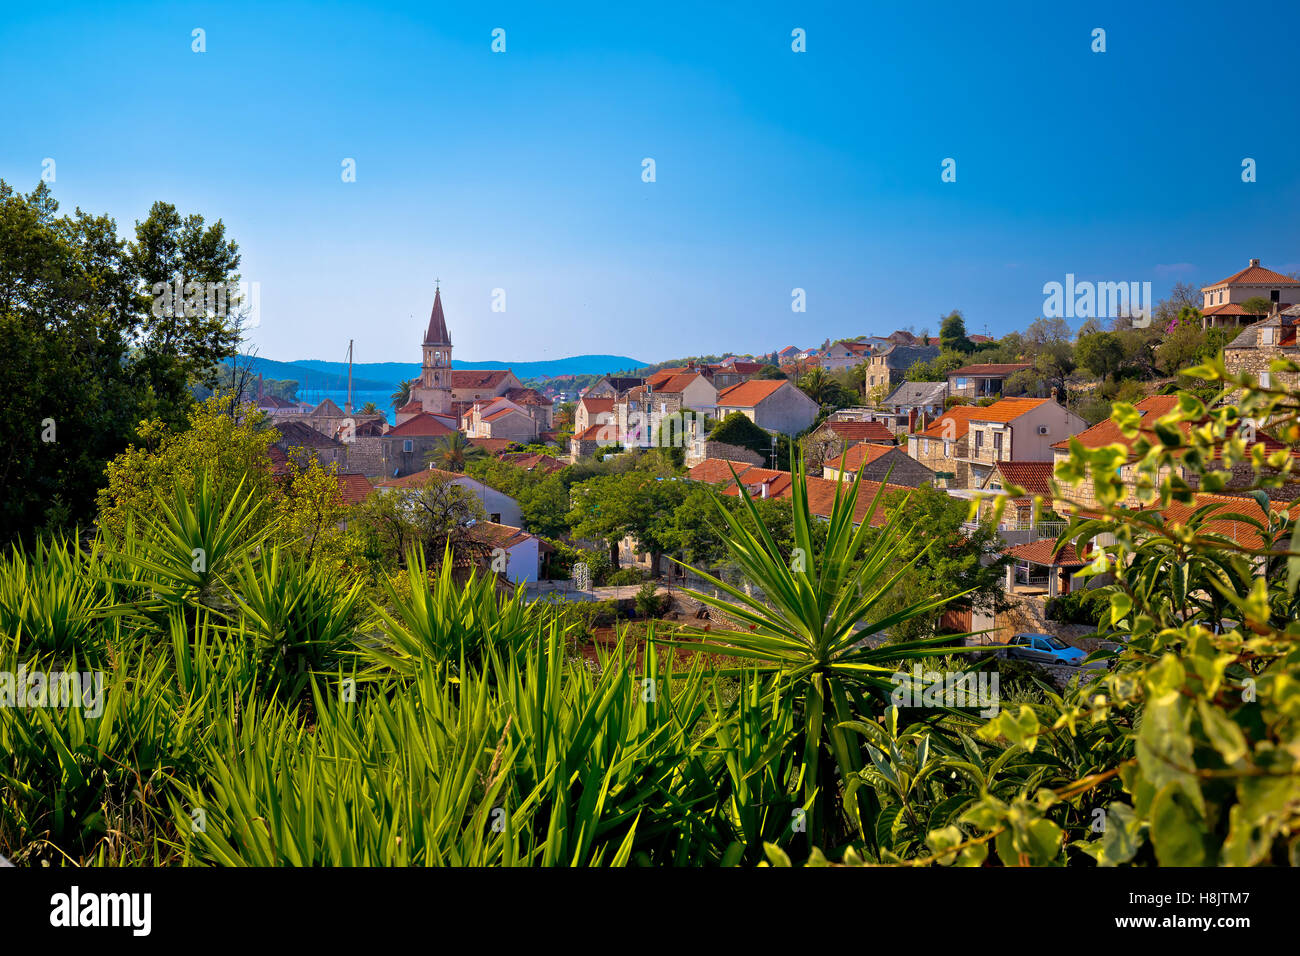 Town of Milna coast view, Island of Brac, Dalmatia, Croatia - Stock Image